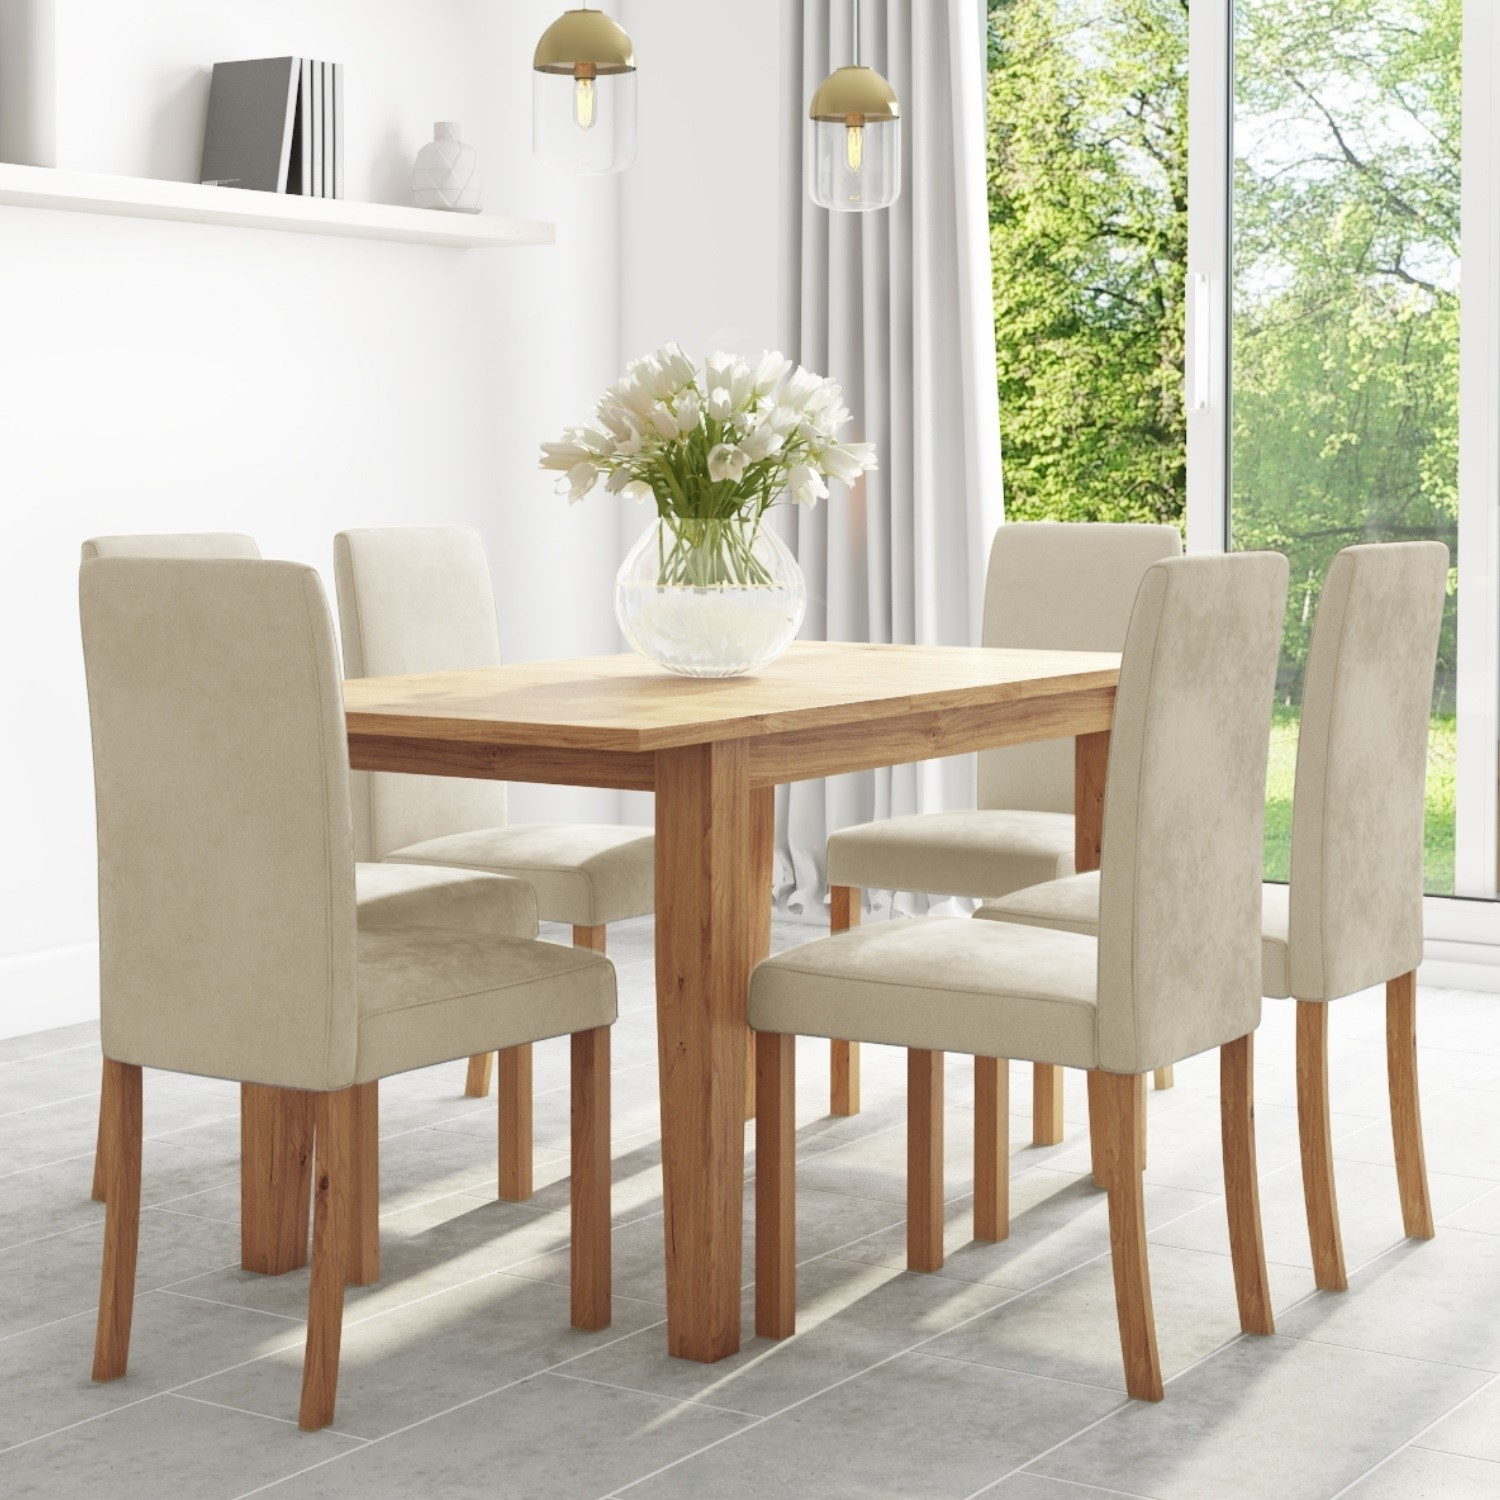 Oak Extendable Dining Table 6 Cream Velvet Chairs New Haven Furniture123